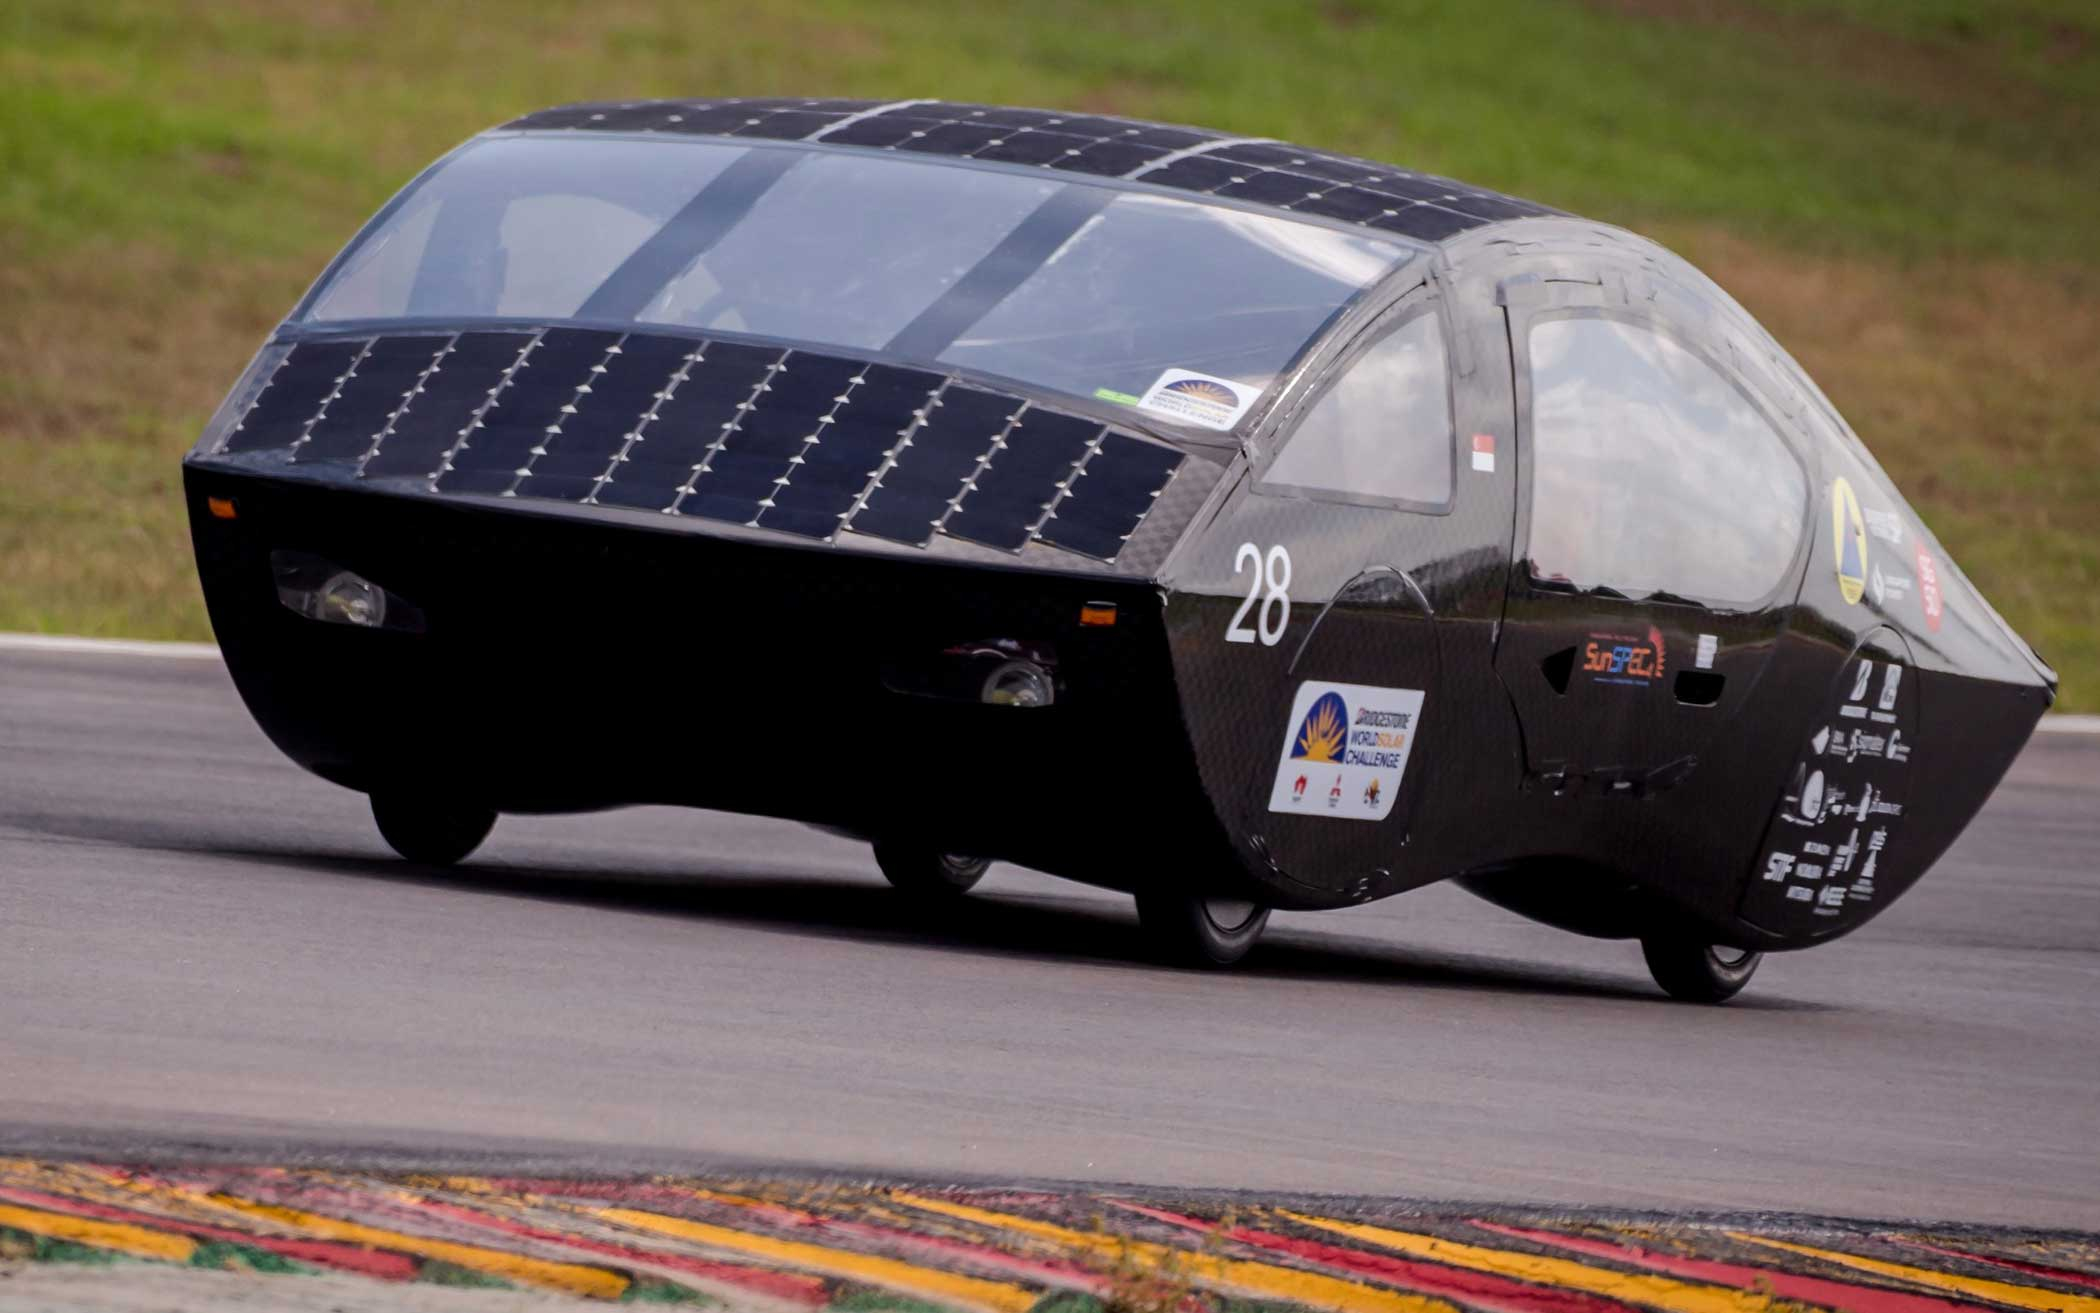 The SunSPEC car from Singapore competes during the qualification lap on Oct. 17, 2015.